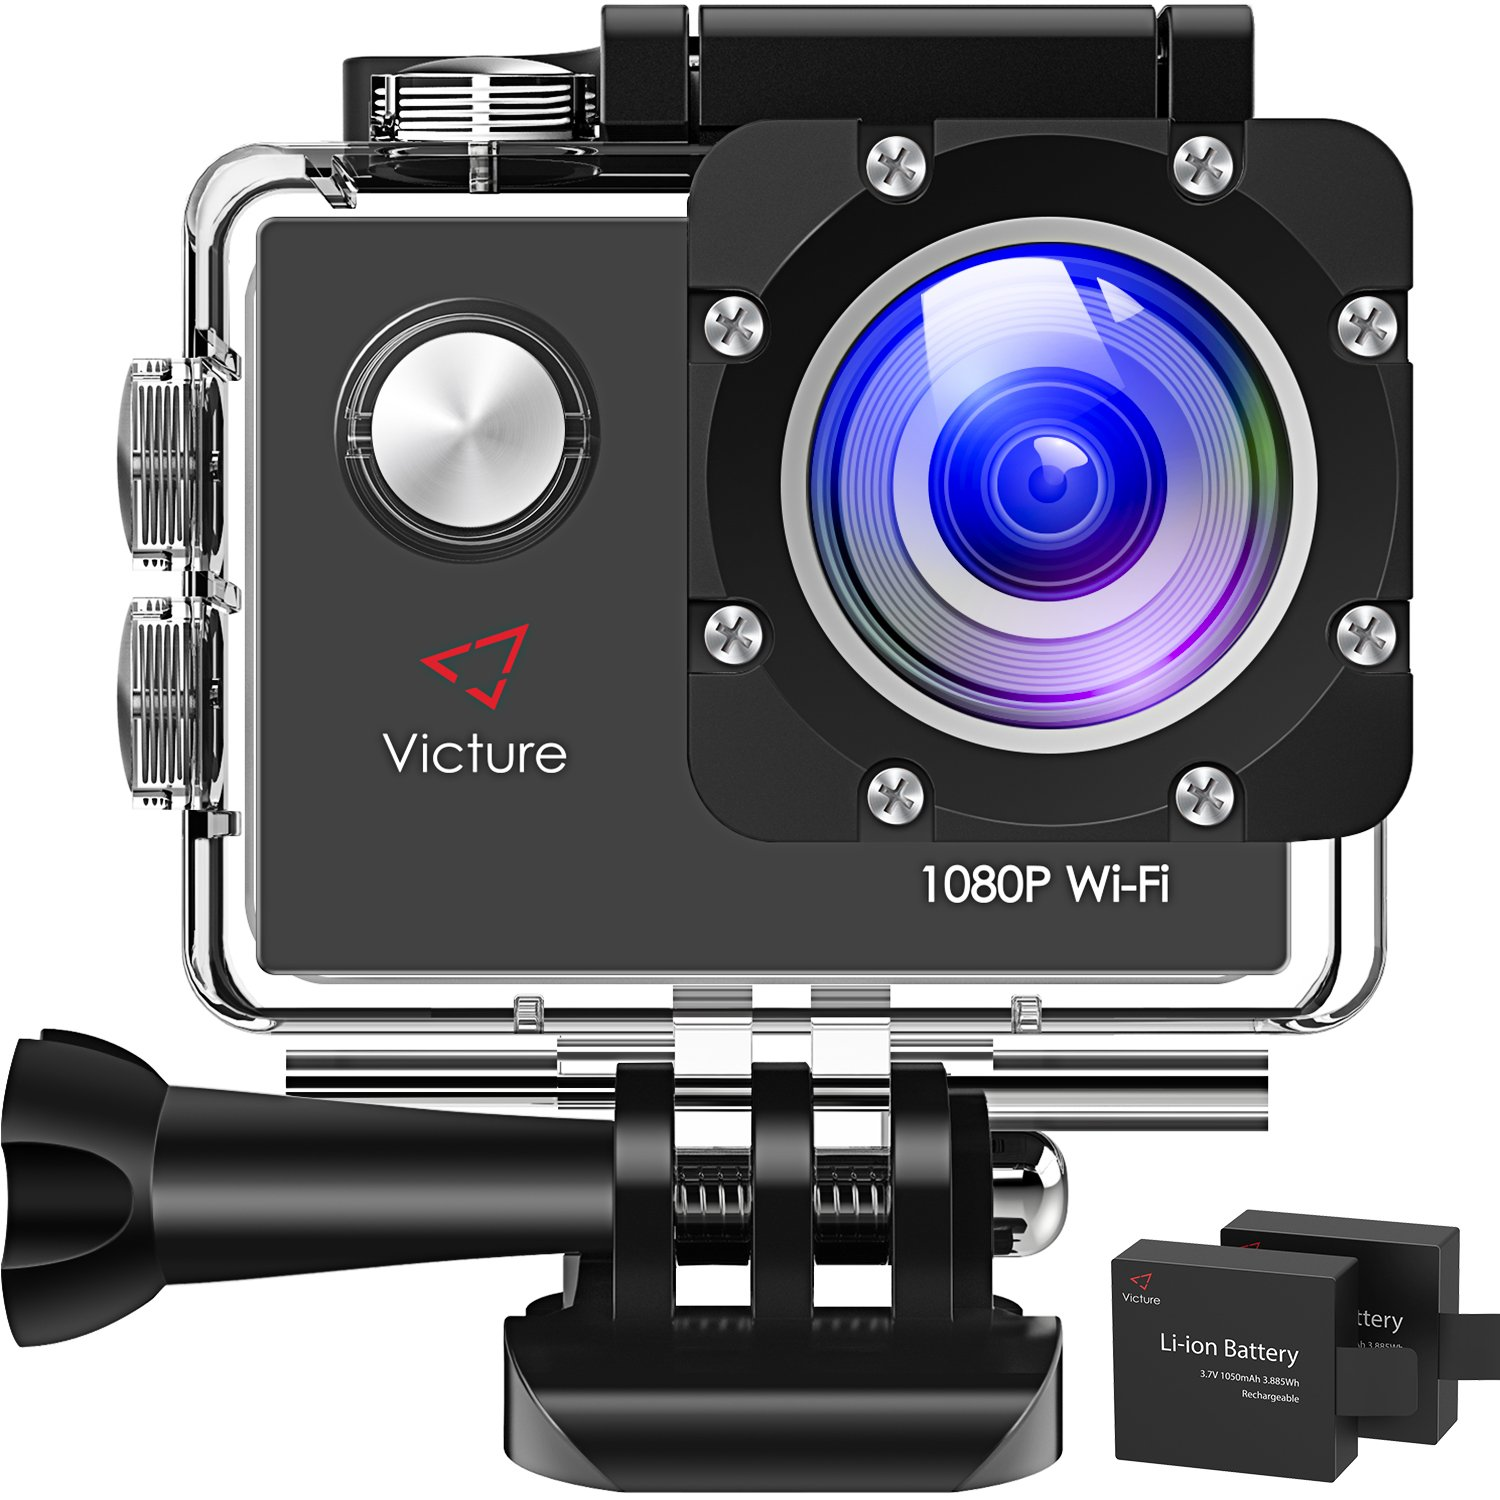 Victure Action Camera WiFi 1080P Full HD 12MP Underwater Cam 2 Inch LCD 170 Degree Wide-Angle 30M Waterproof Sports Camera with 2 Rechargeable 1050mAh Batteries by Victure